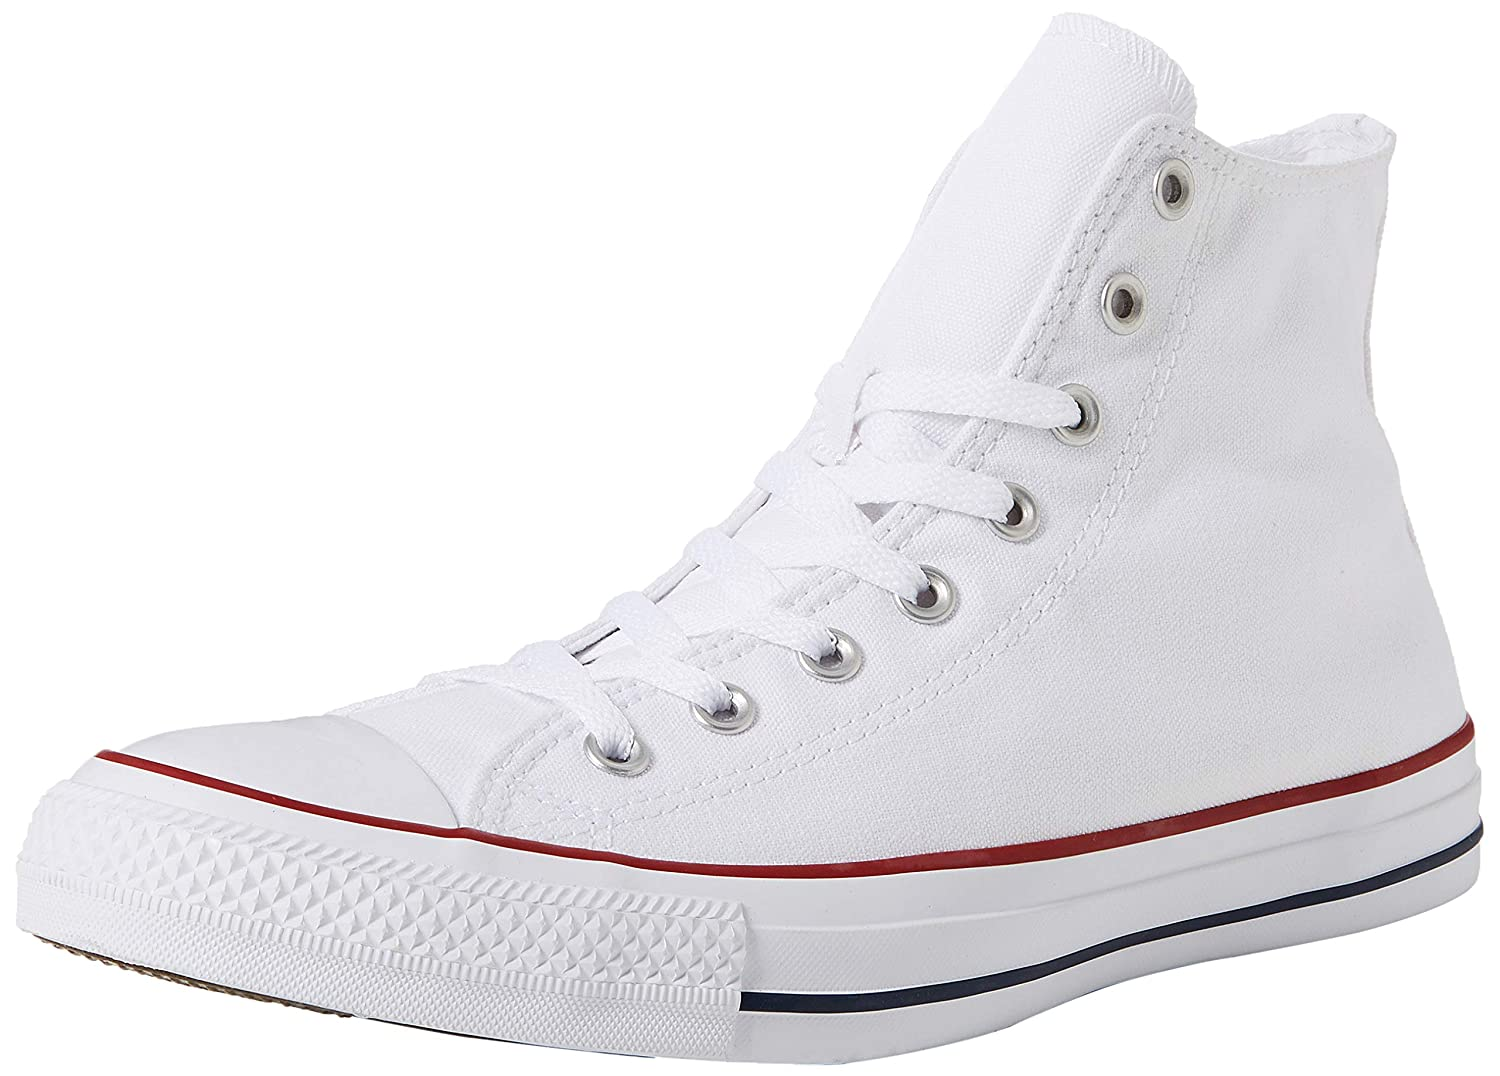 Converse Ctas Core Ctas Hi, Baskets mode Converse mode mixte adulte 91b8843 - latesttechnology.space